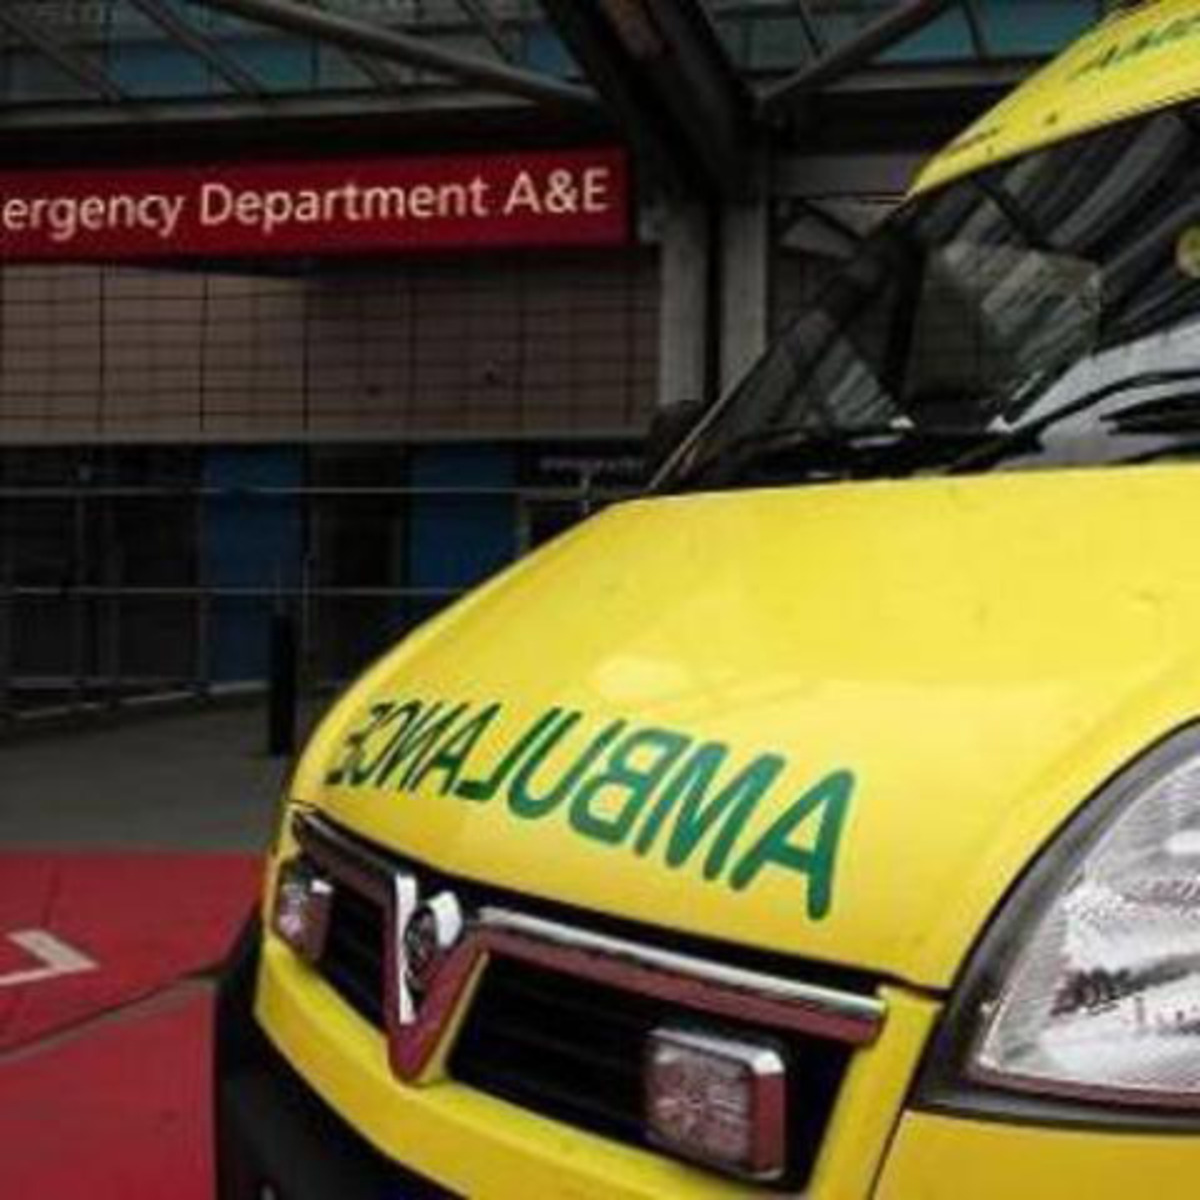 Drop in A&E admissions due to violence